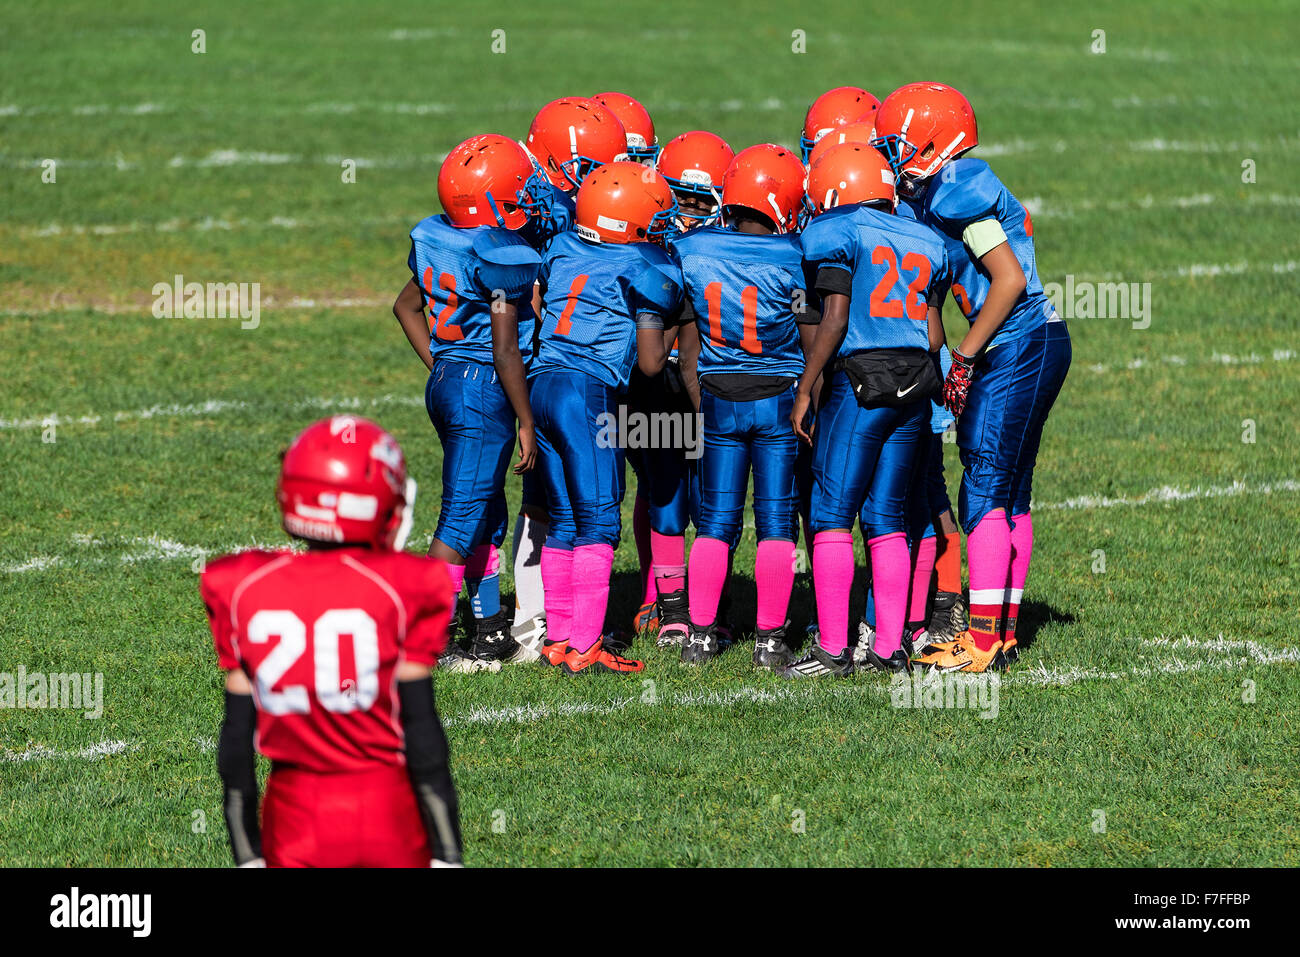 Young boys in the huddle during a Pop Warner football game, USA - Stock Image